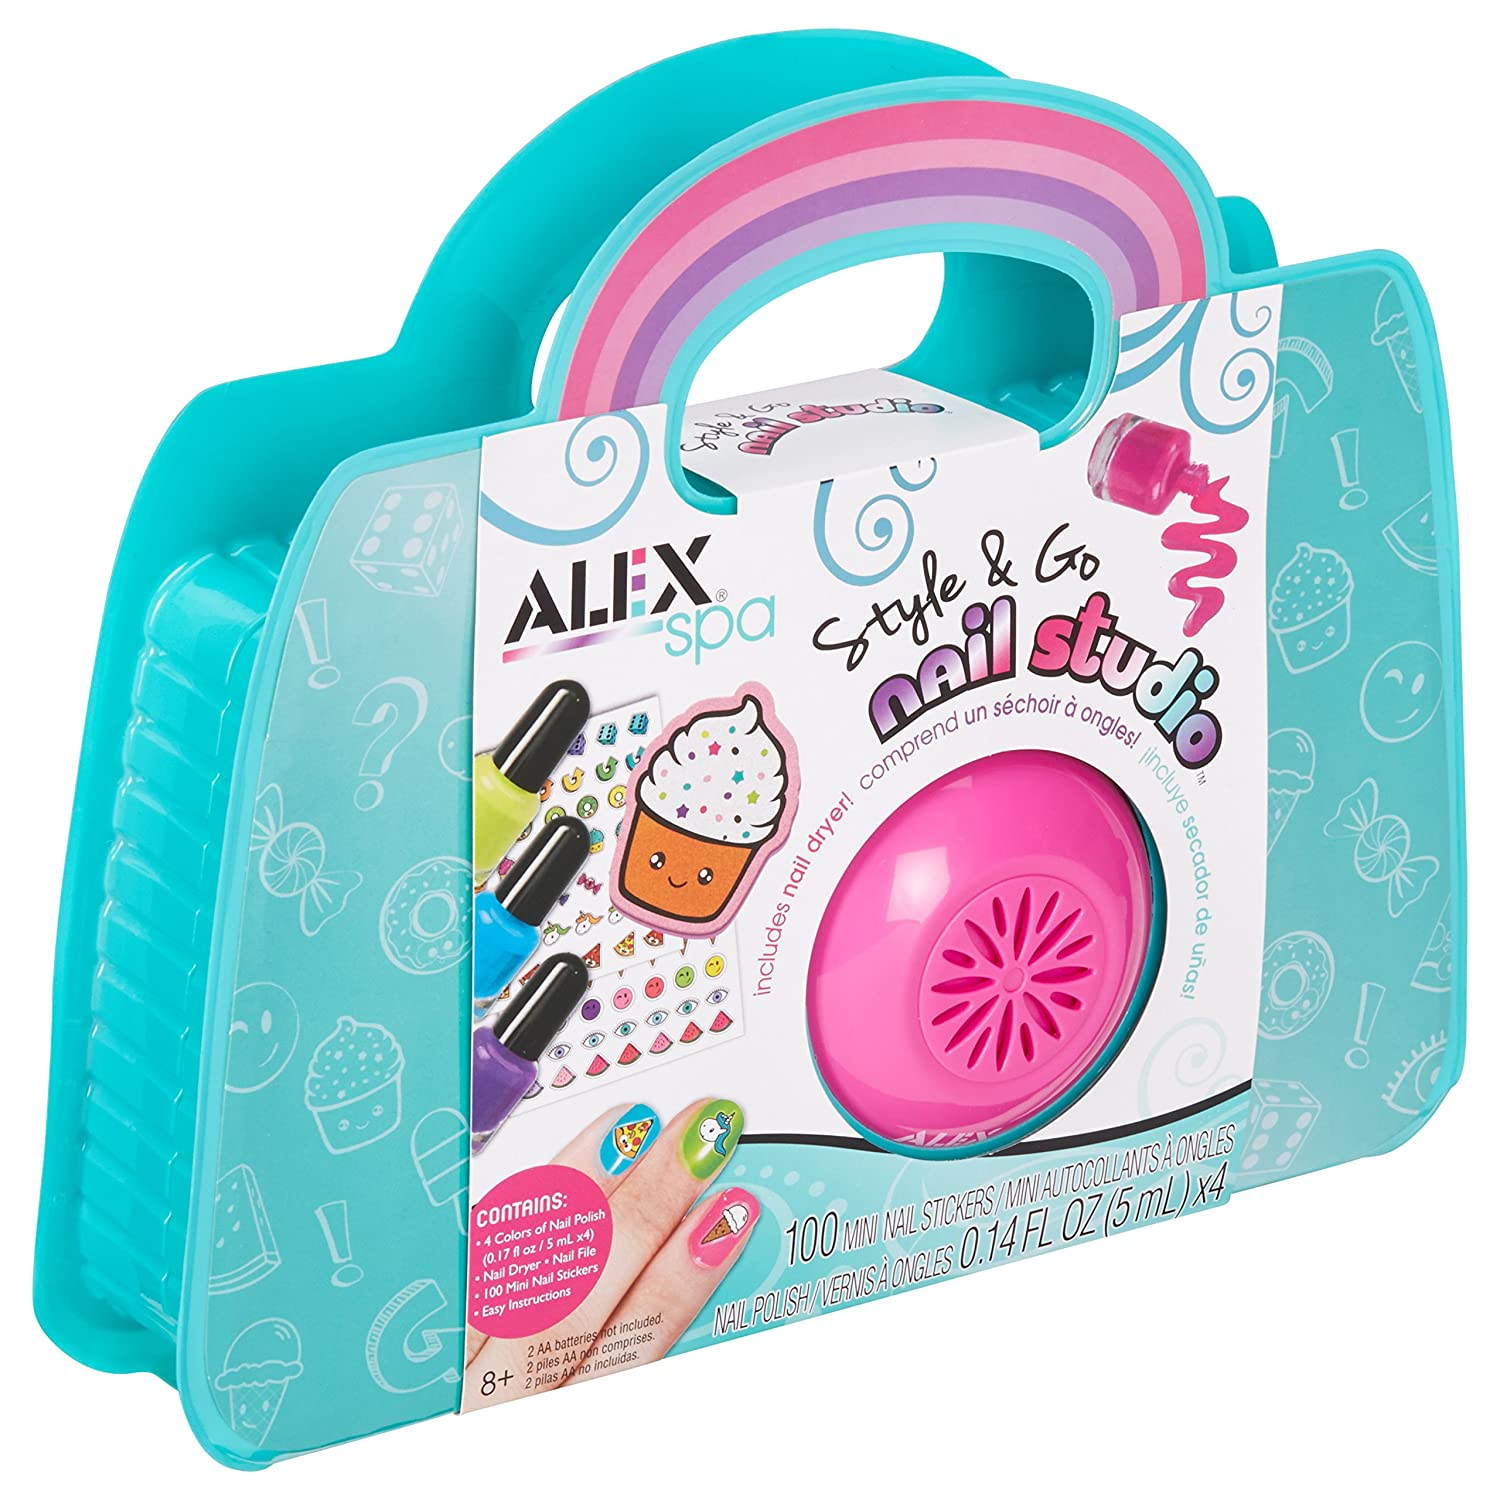 Amazon.com: ALEX Spa Style & Go Nail Studio: Toys & Games